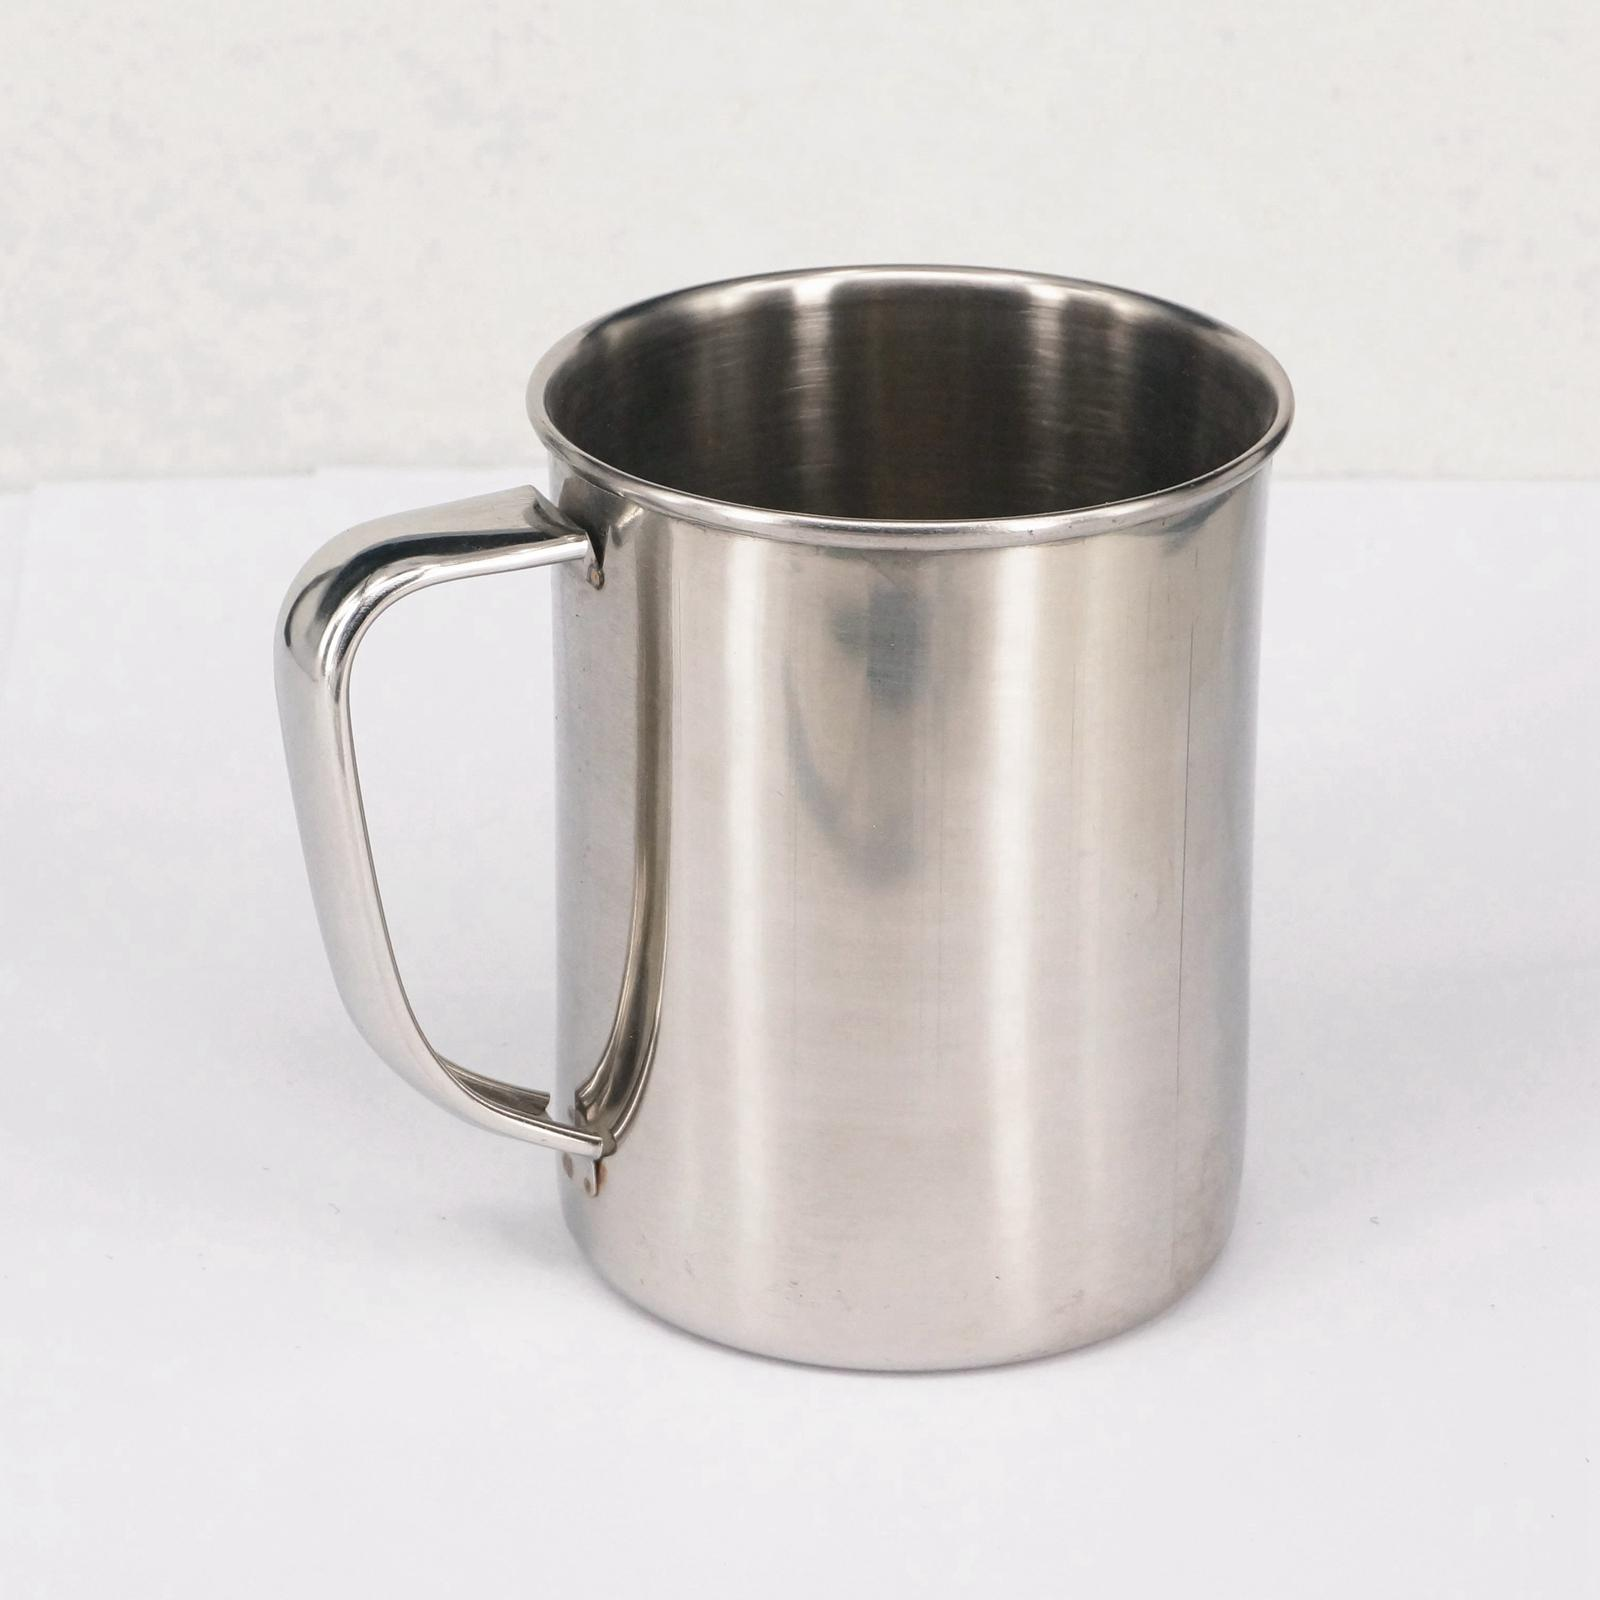 old daddy's pneumatic store 500ml Chemistry Laboratory Stainless Steel Measuring Beaker Cup With Pour Spout